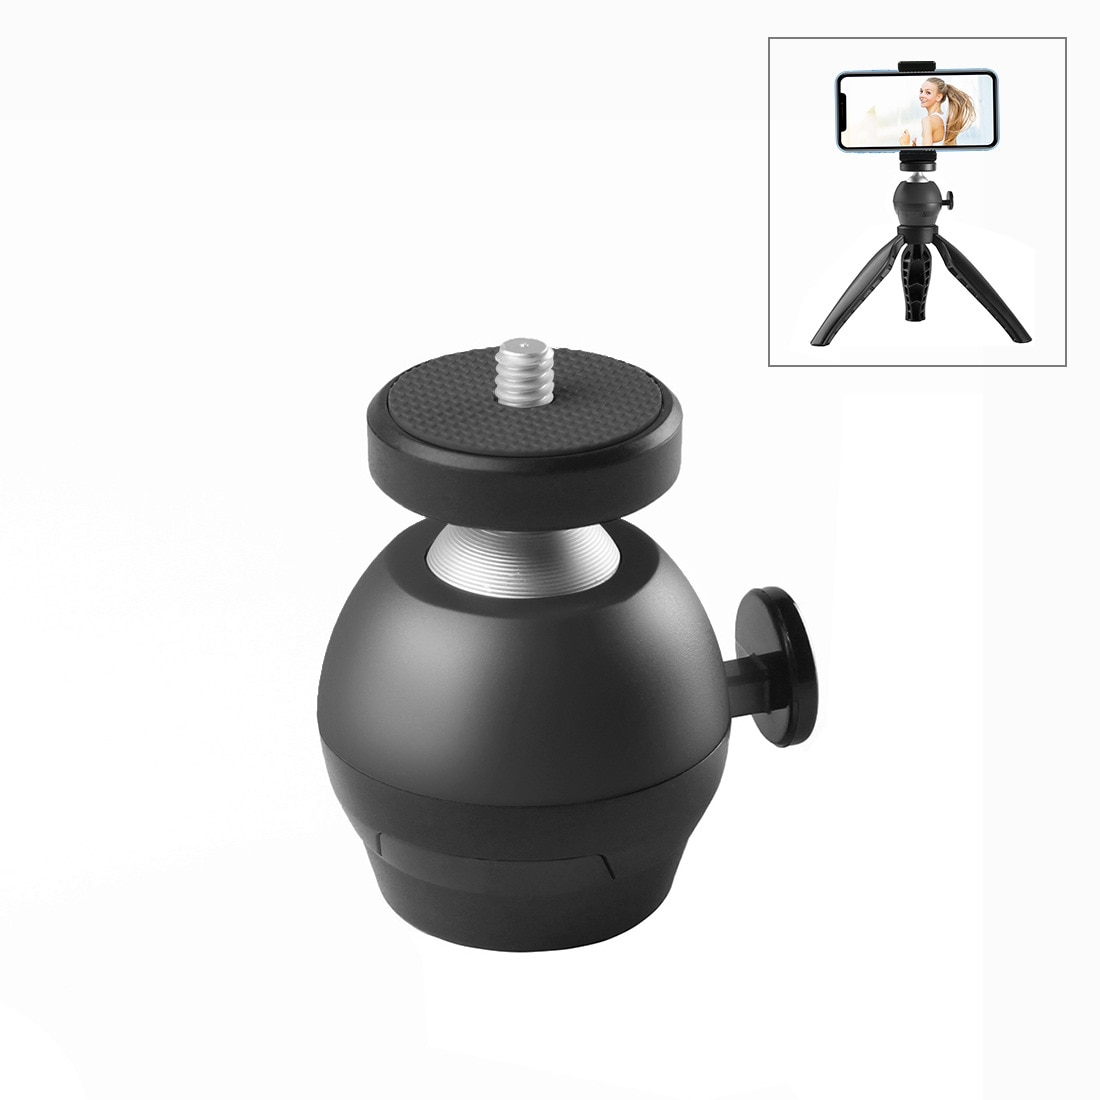 cnc aluminum alloy 1 inch ball head mount adapter with m5 screw holes for diving sports dslr camera bracket tripod clip adapters PULUZ 1/4 inch Screw CNC Aluminum Alloy Ball Head ABS Tripod Adapter for Camera Smartphone